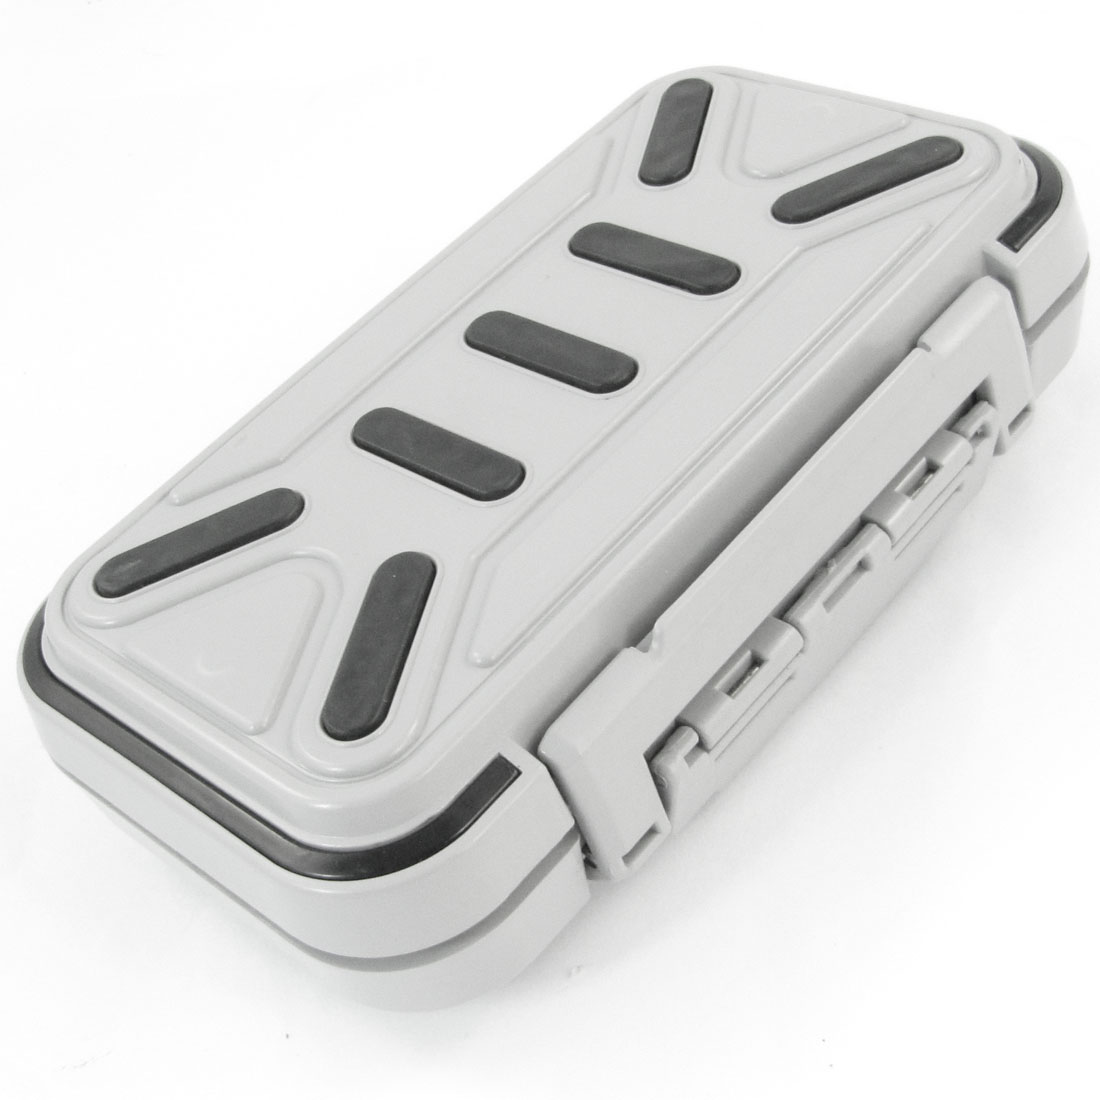 Gray Plastic Shell 16 Slots Fishing Hook Bait Storage Case Container Box